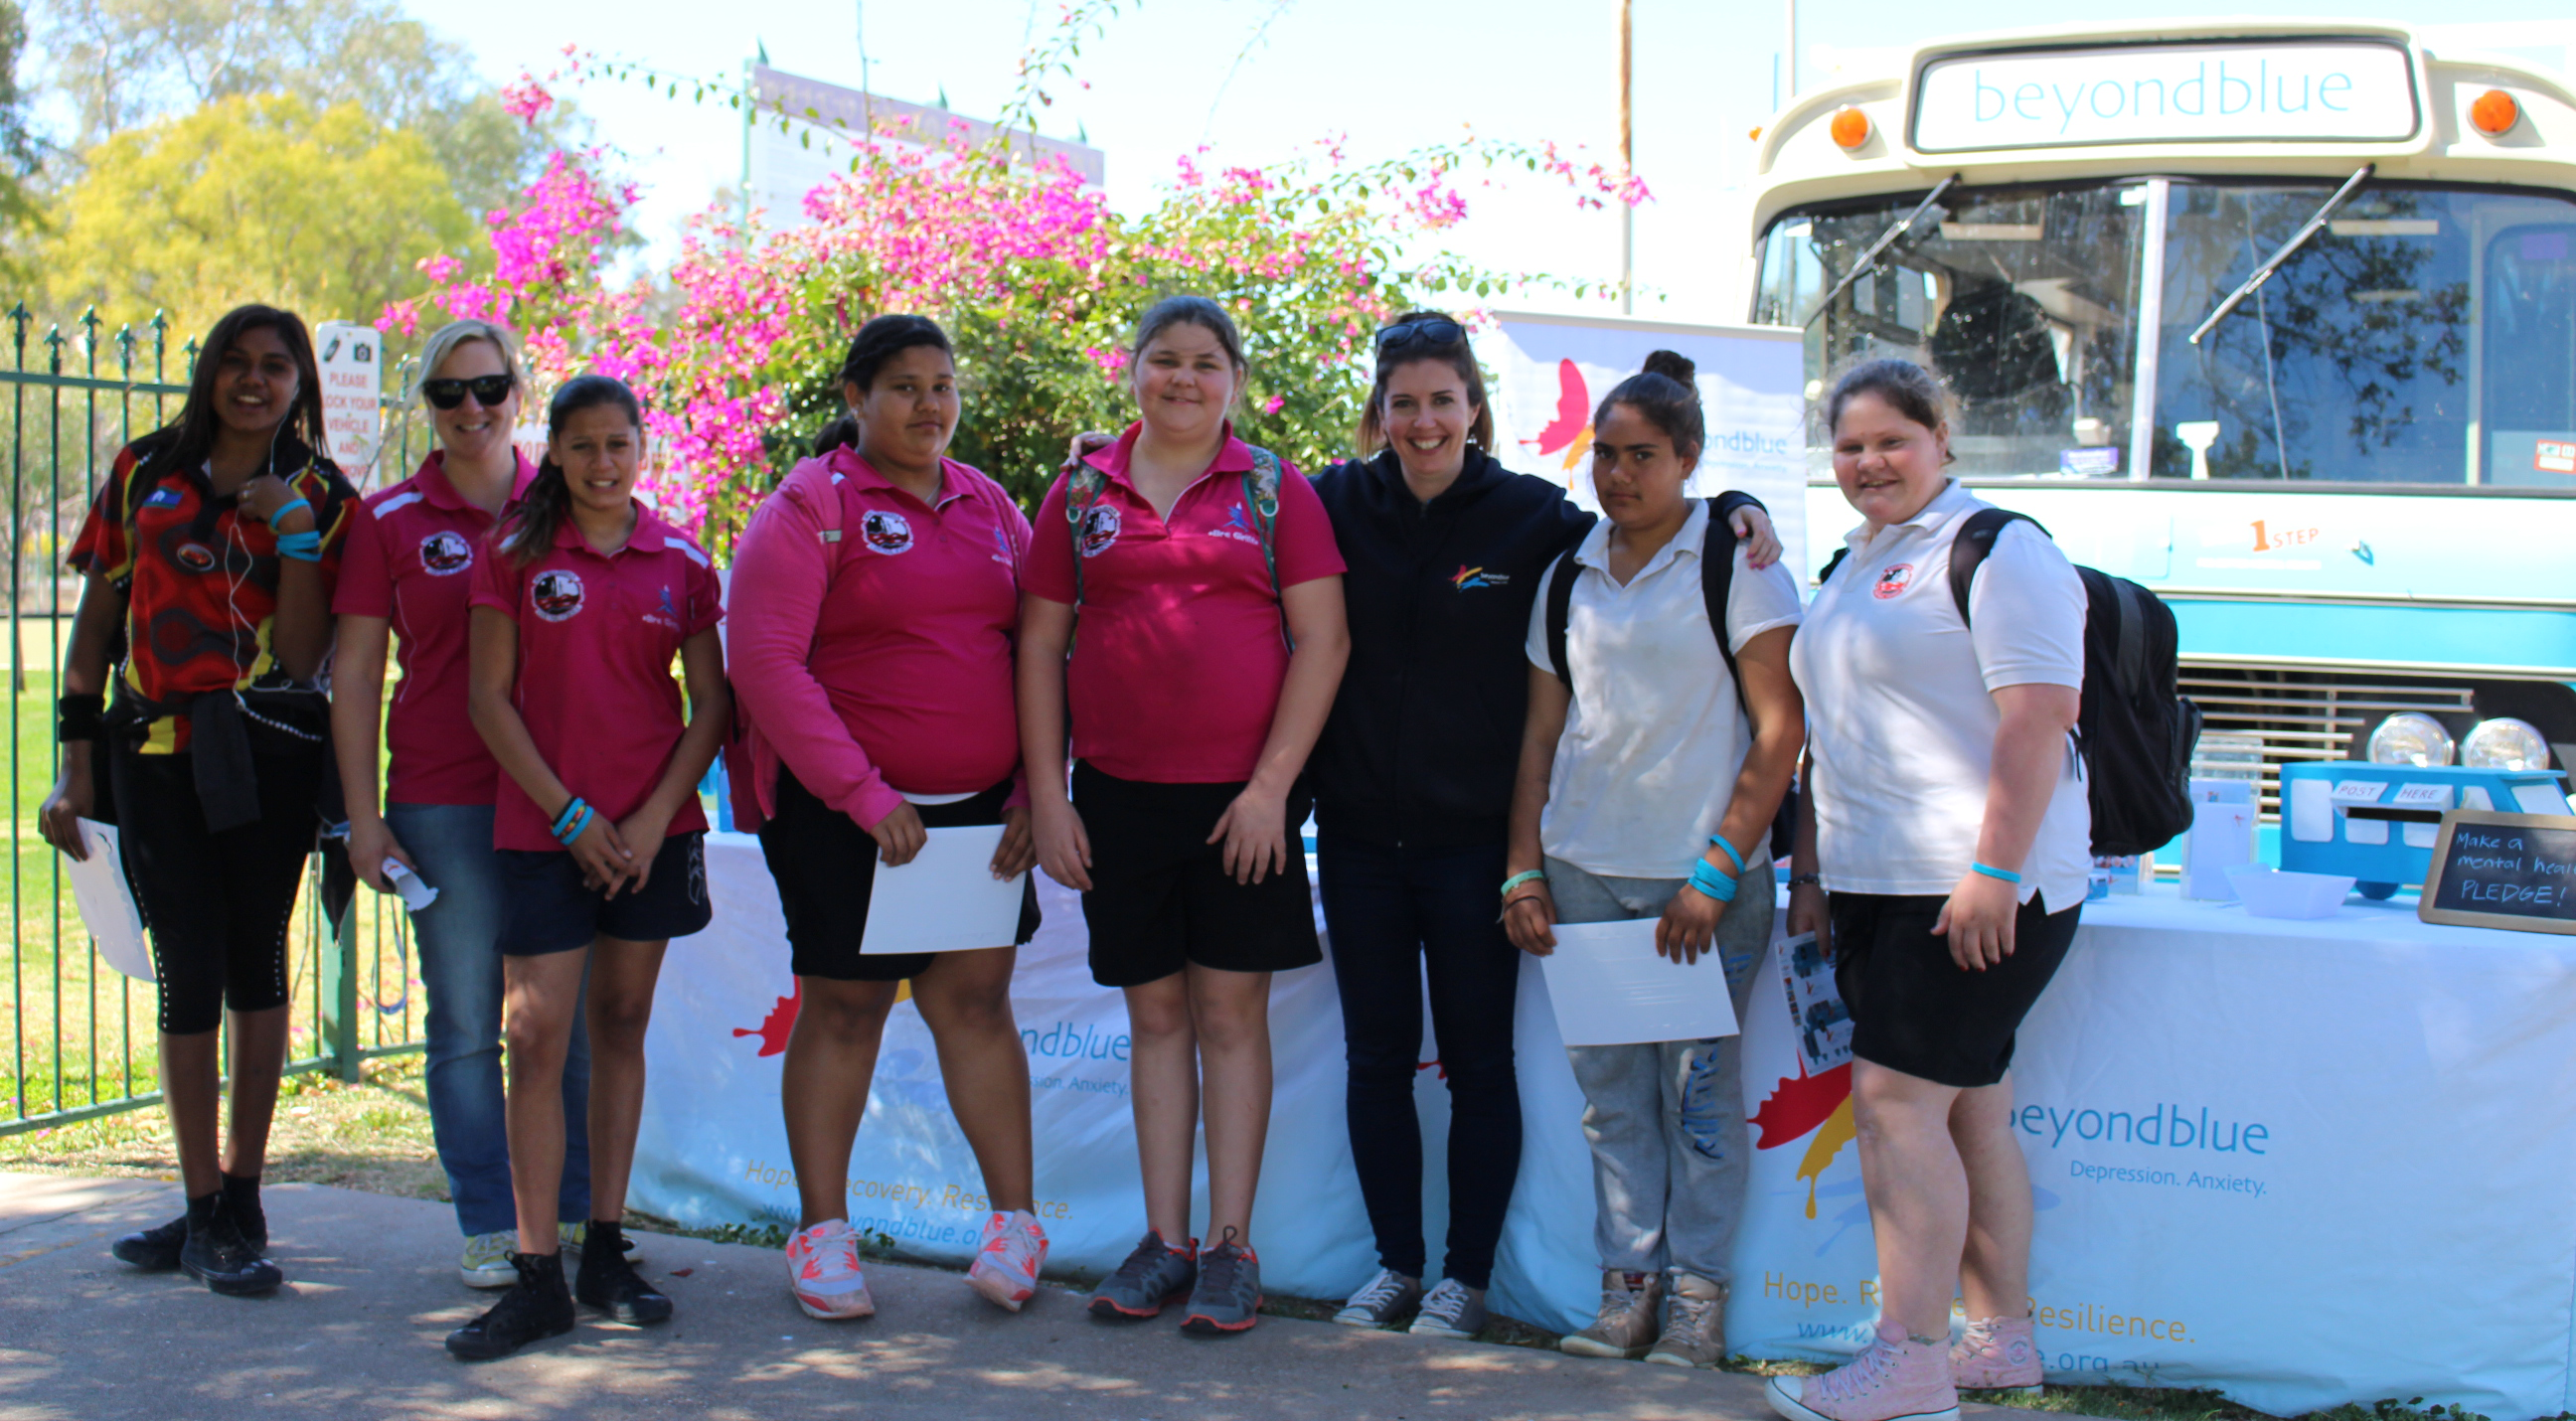 High school students in Brewarrina dropped by the bus.